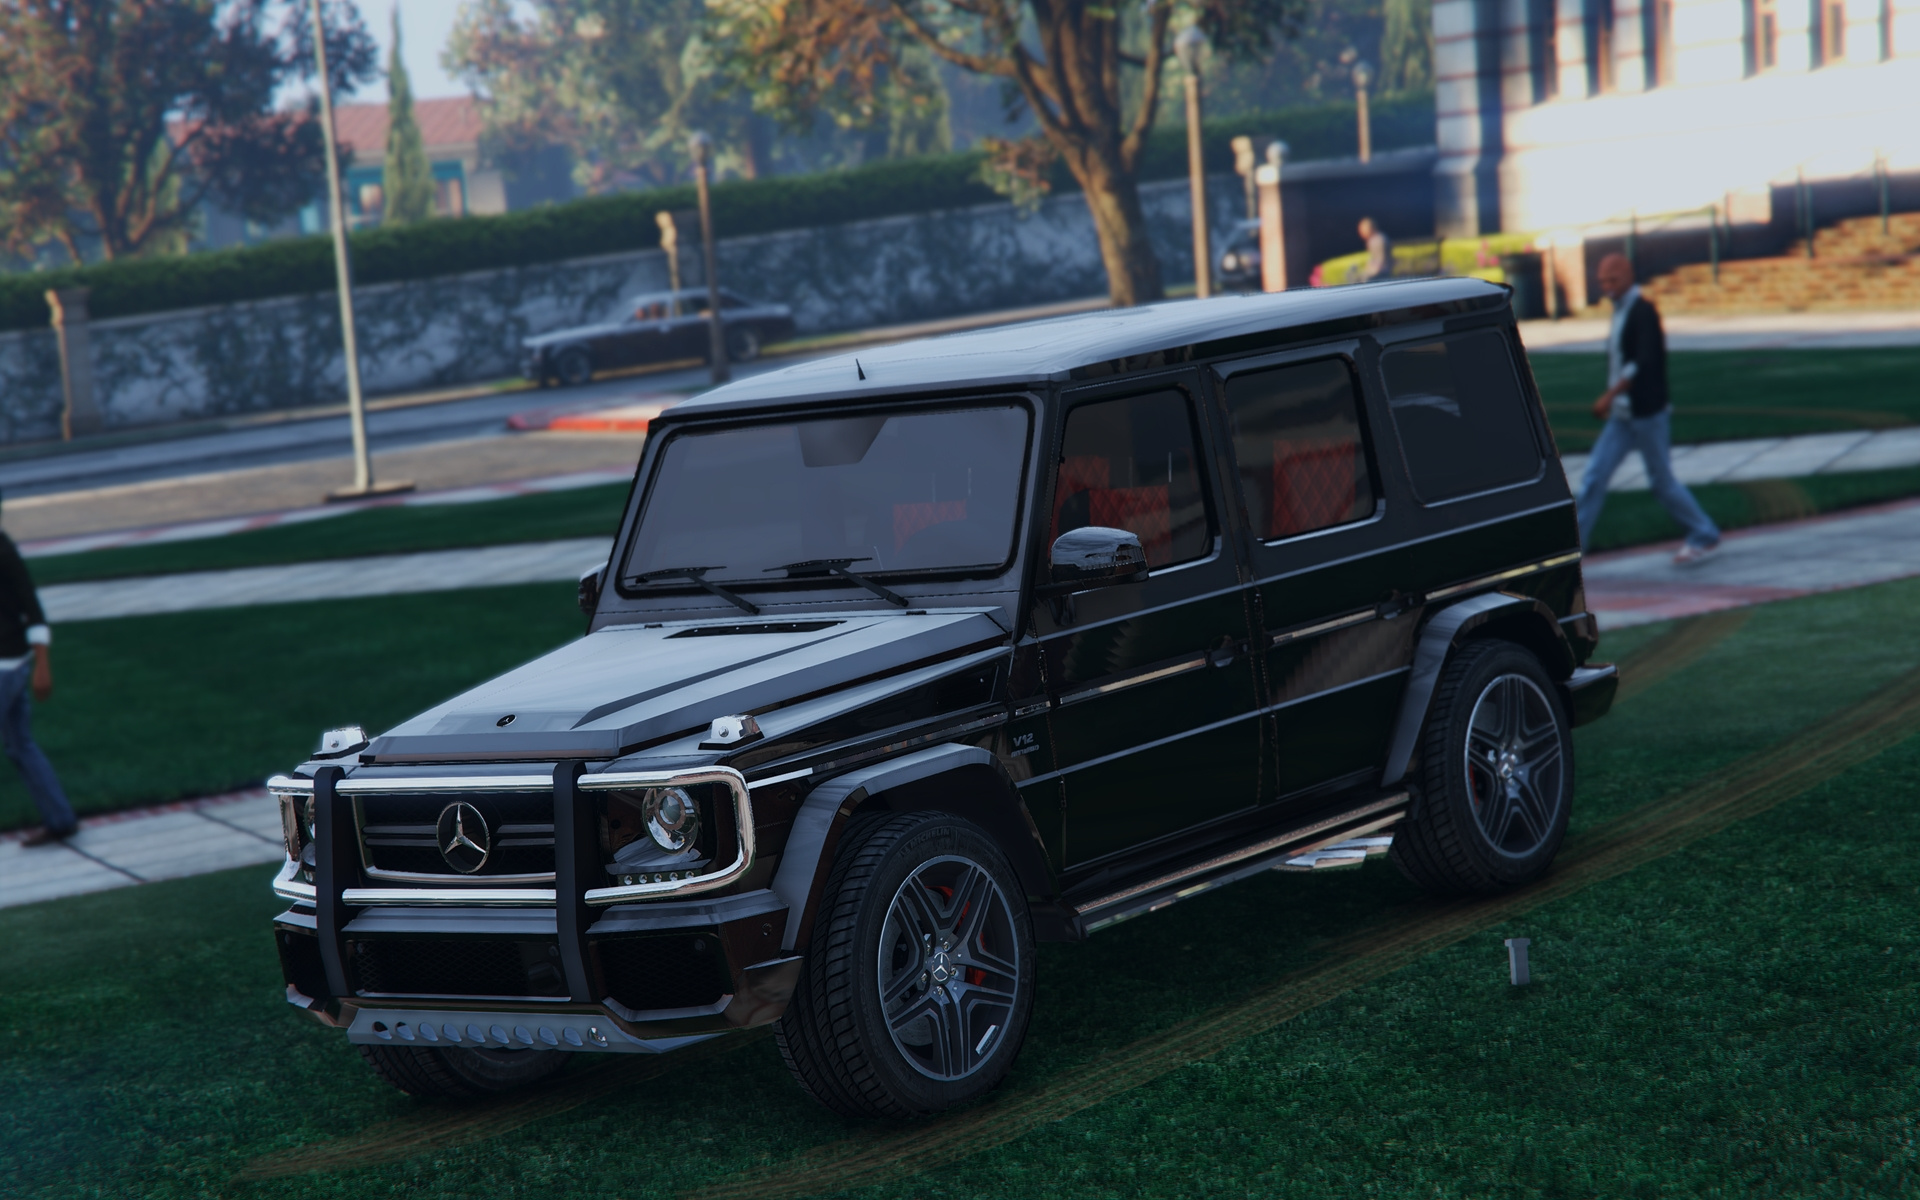 Mercedes benz g65 amg add on replace gta5 for Mercedes benz g65